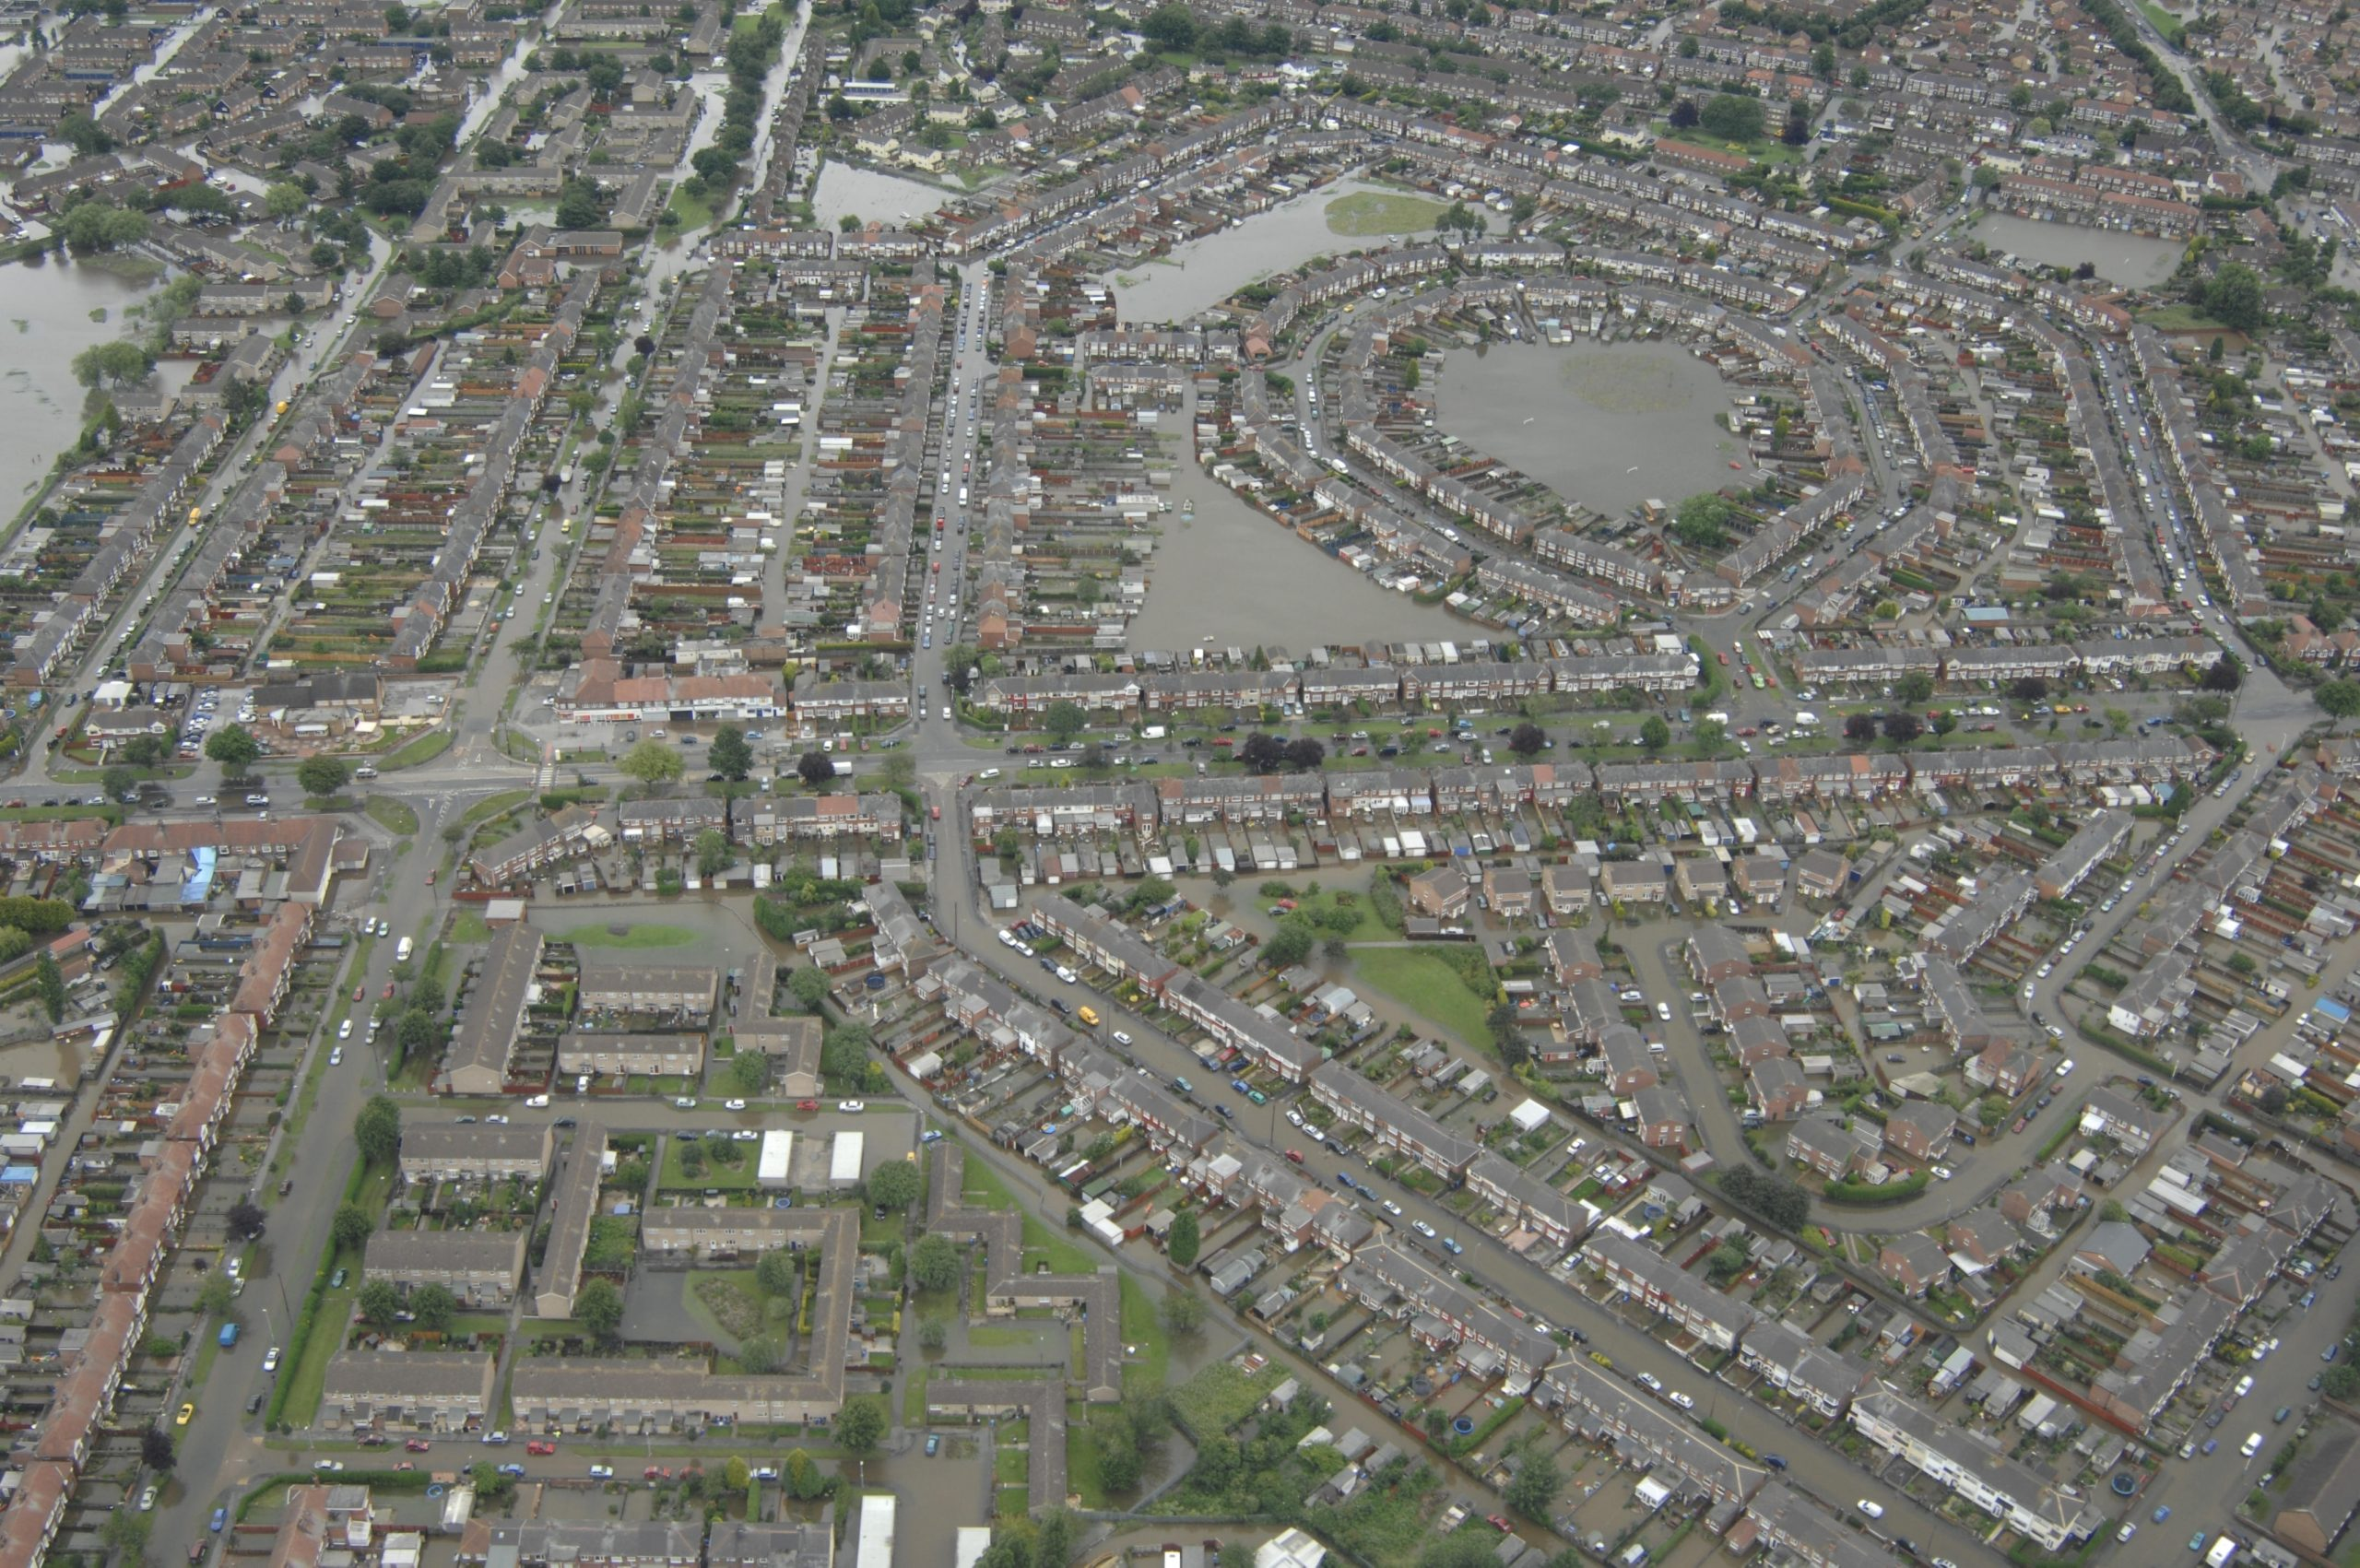 An aerial view of Bristol Road Area of Hull during the 2007 Floods credit Environment Agency